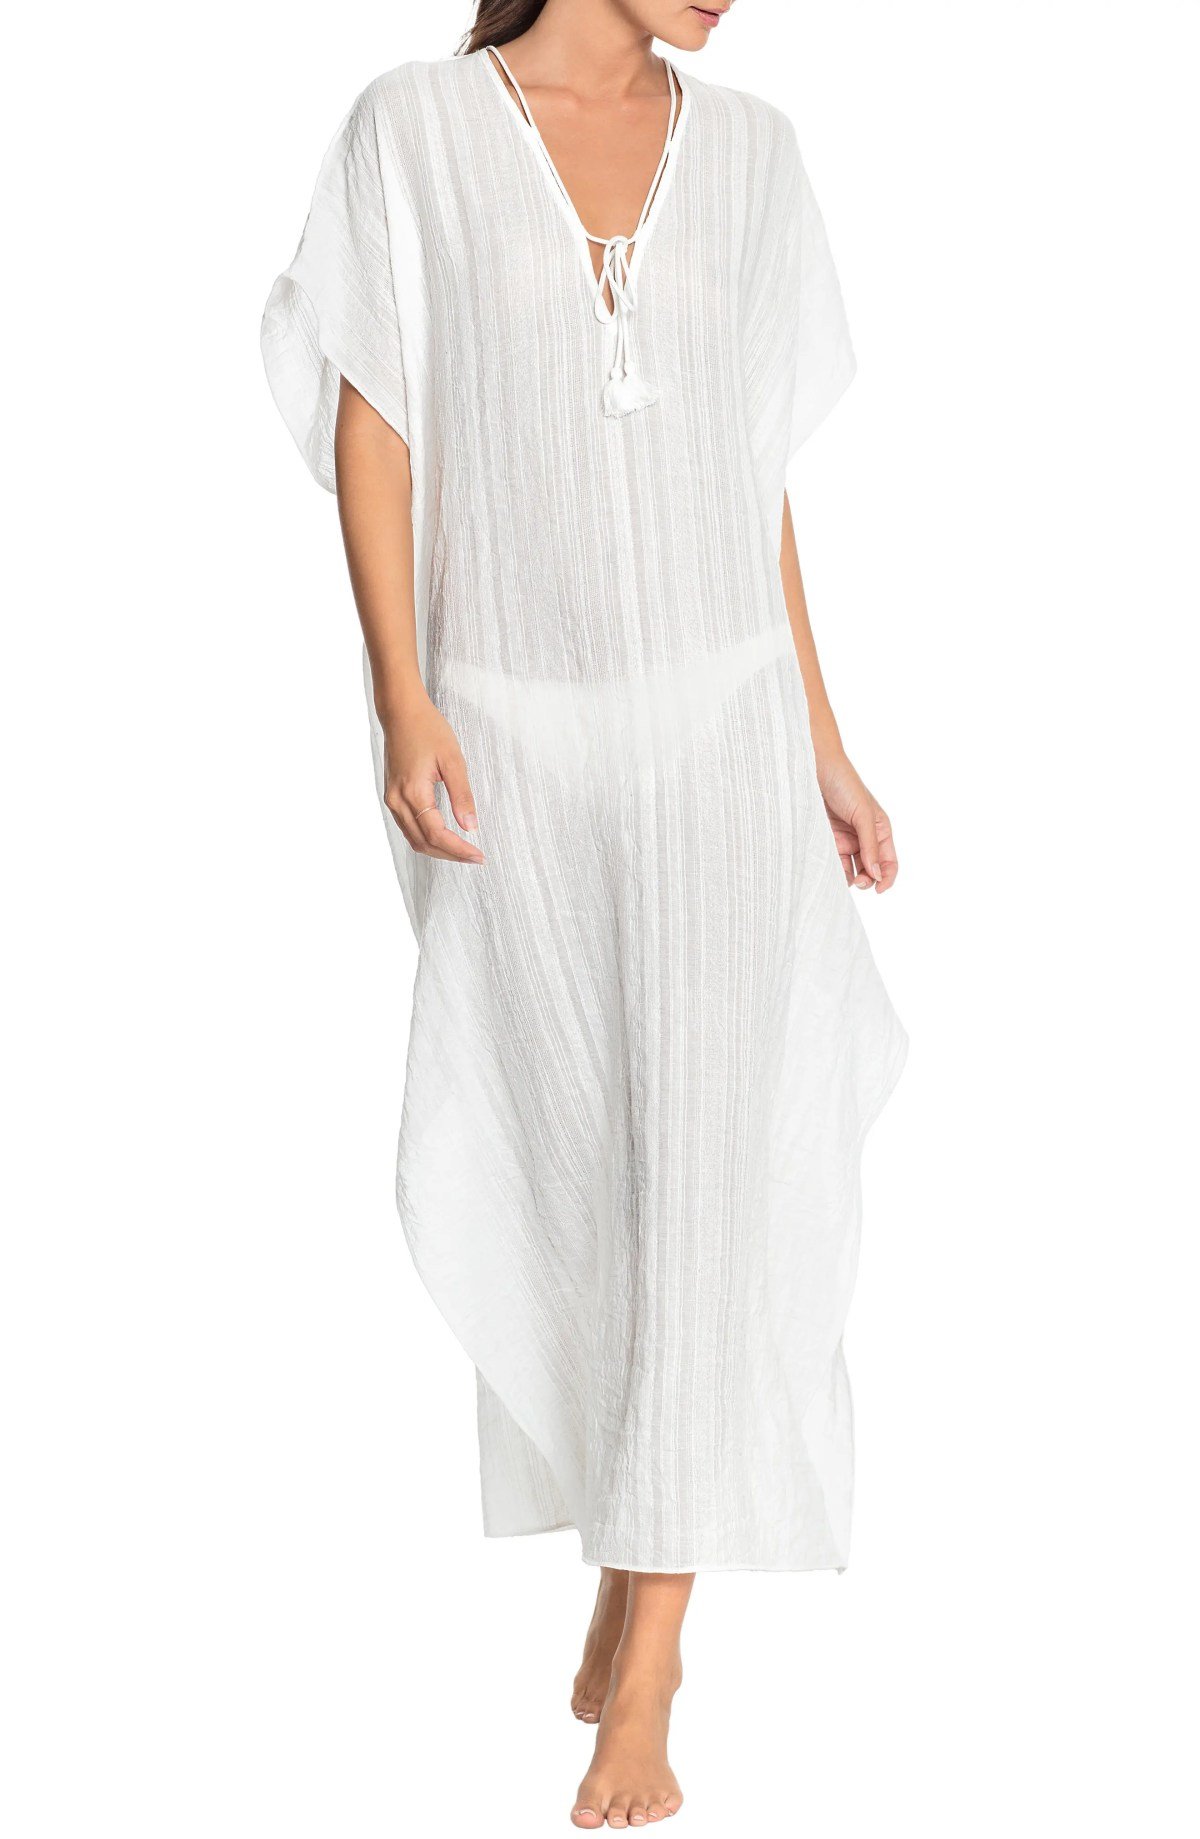 ROBIN PICCONE Michelle Long Caftan, Main, color, WHITE